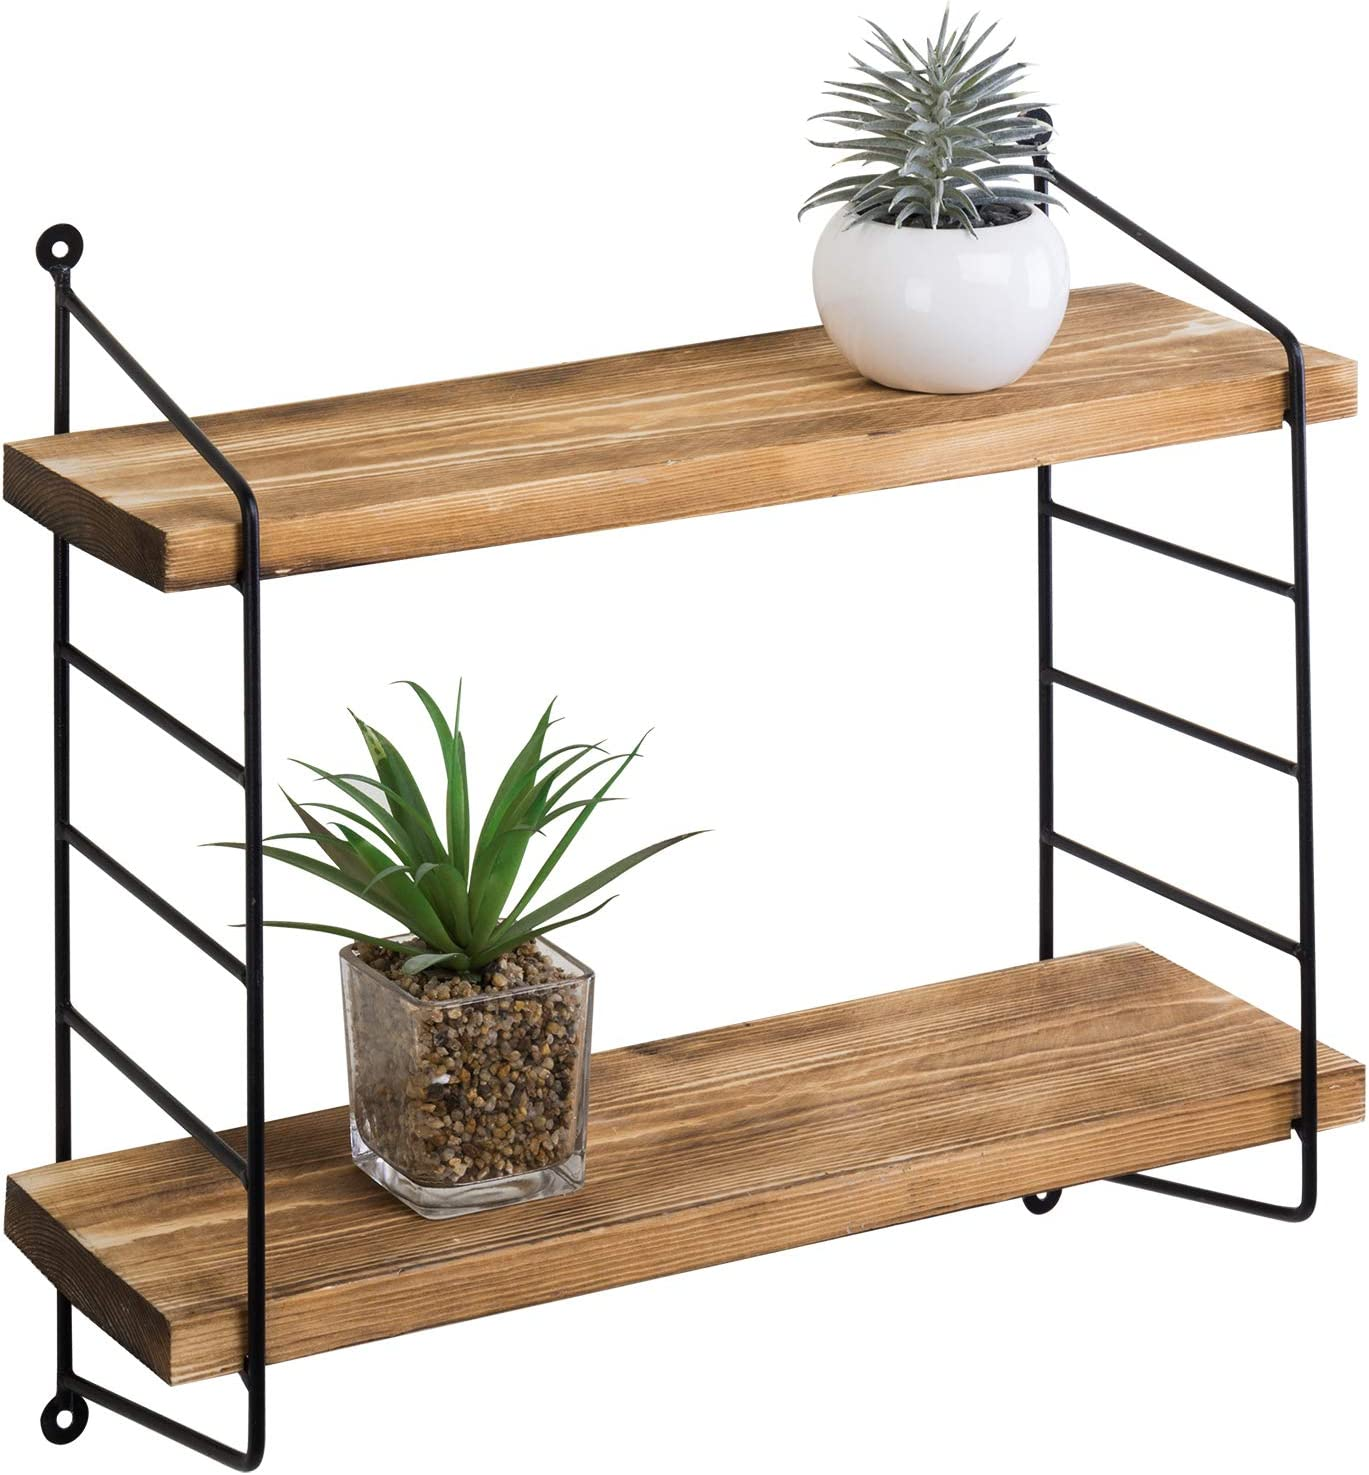 MyGift Set of 2 Industrial Wall-Mounted 15-Inch Torched Wood Shelves with Metal Pipe Bracket